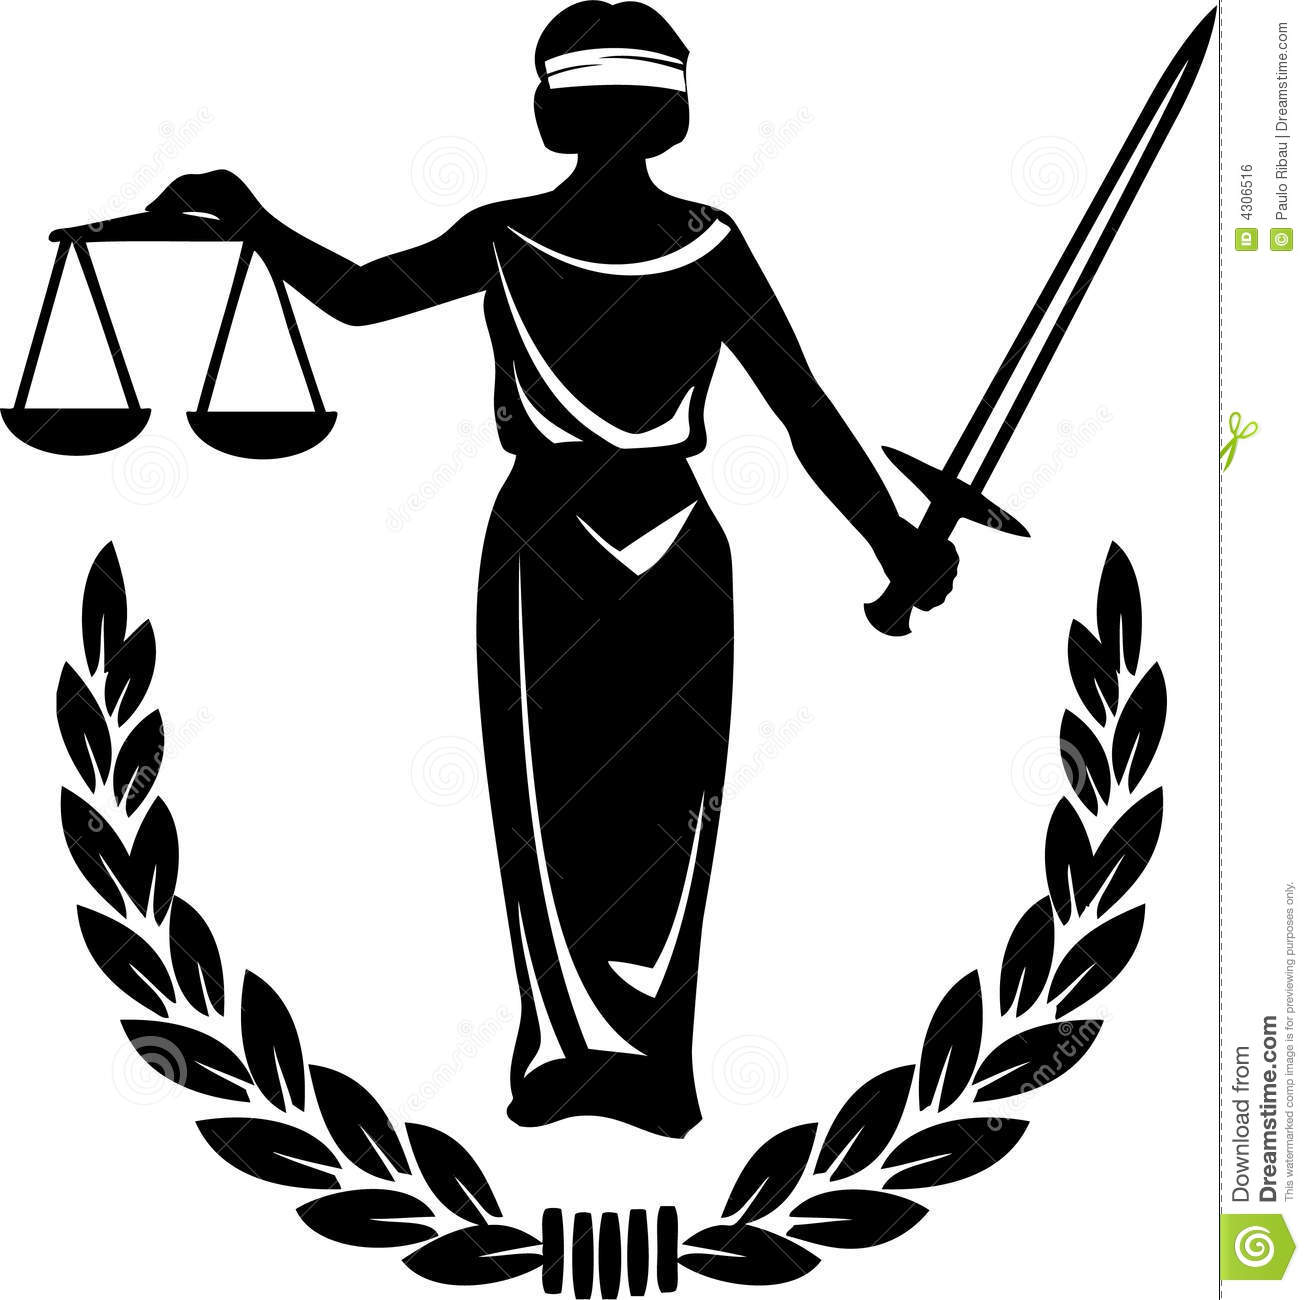 1309x1300 List Of Synonyms And Antonyms Of The Word Lady Legal Scale